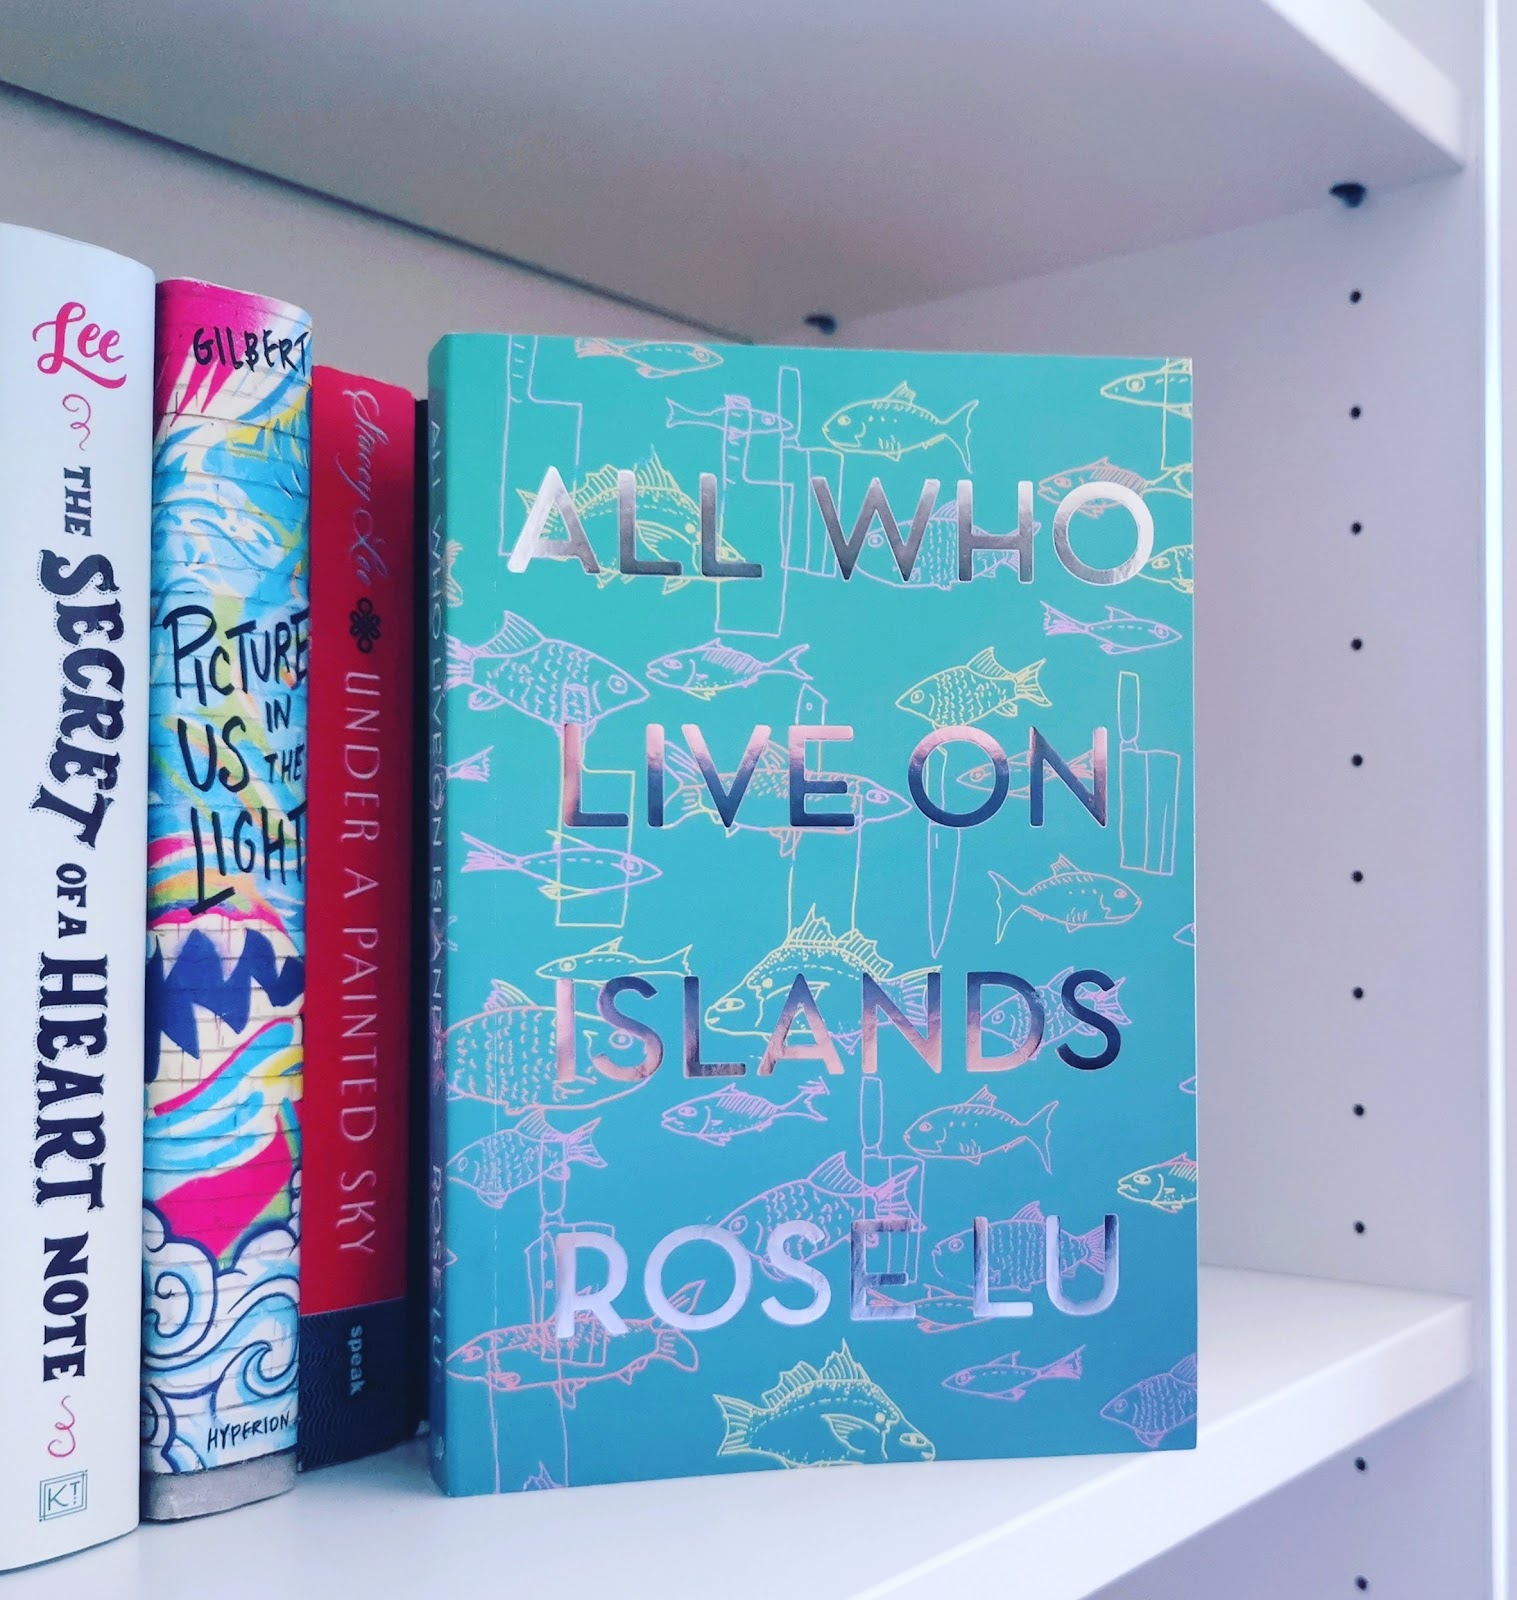 Photo of All Who Live on Islands on bookshelf, next to Under a Painted Sky, Picture Us in the Light, and Secret of a Heart Note